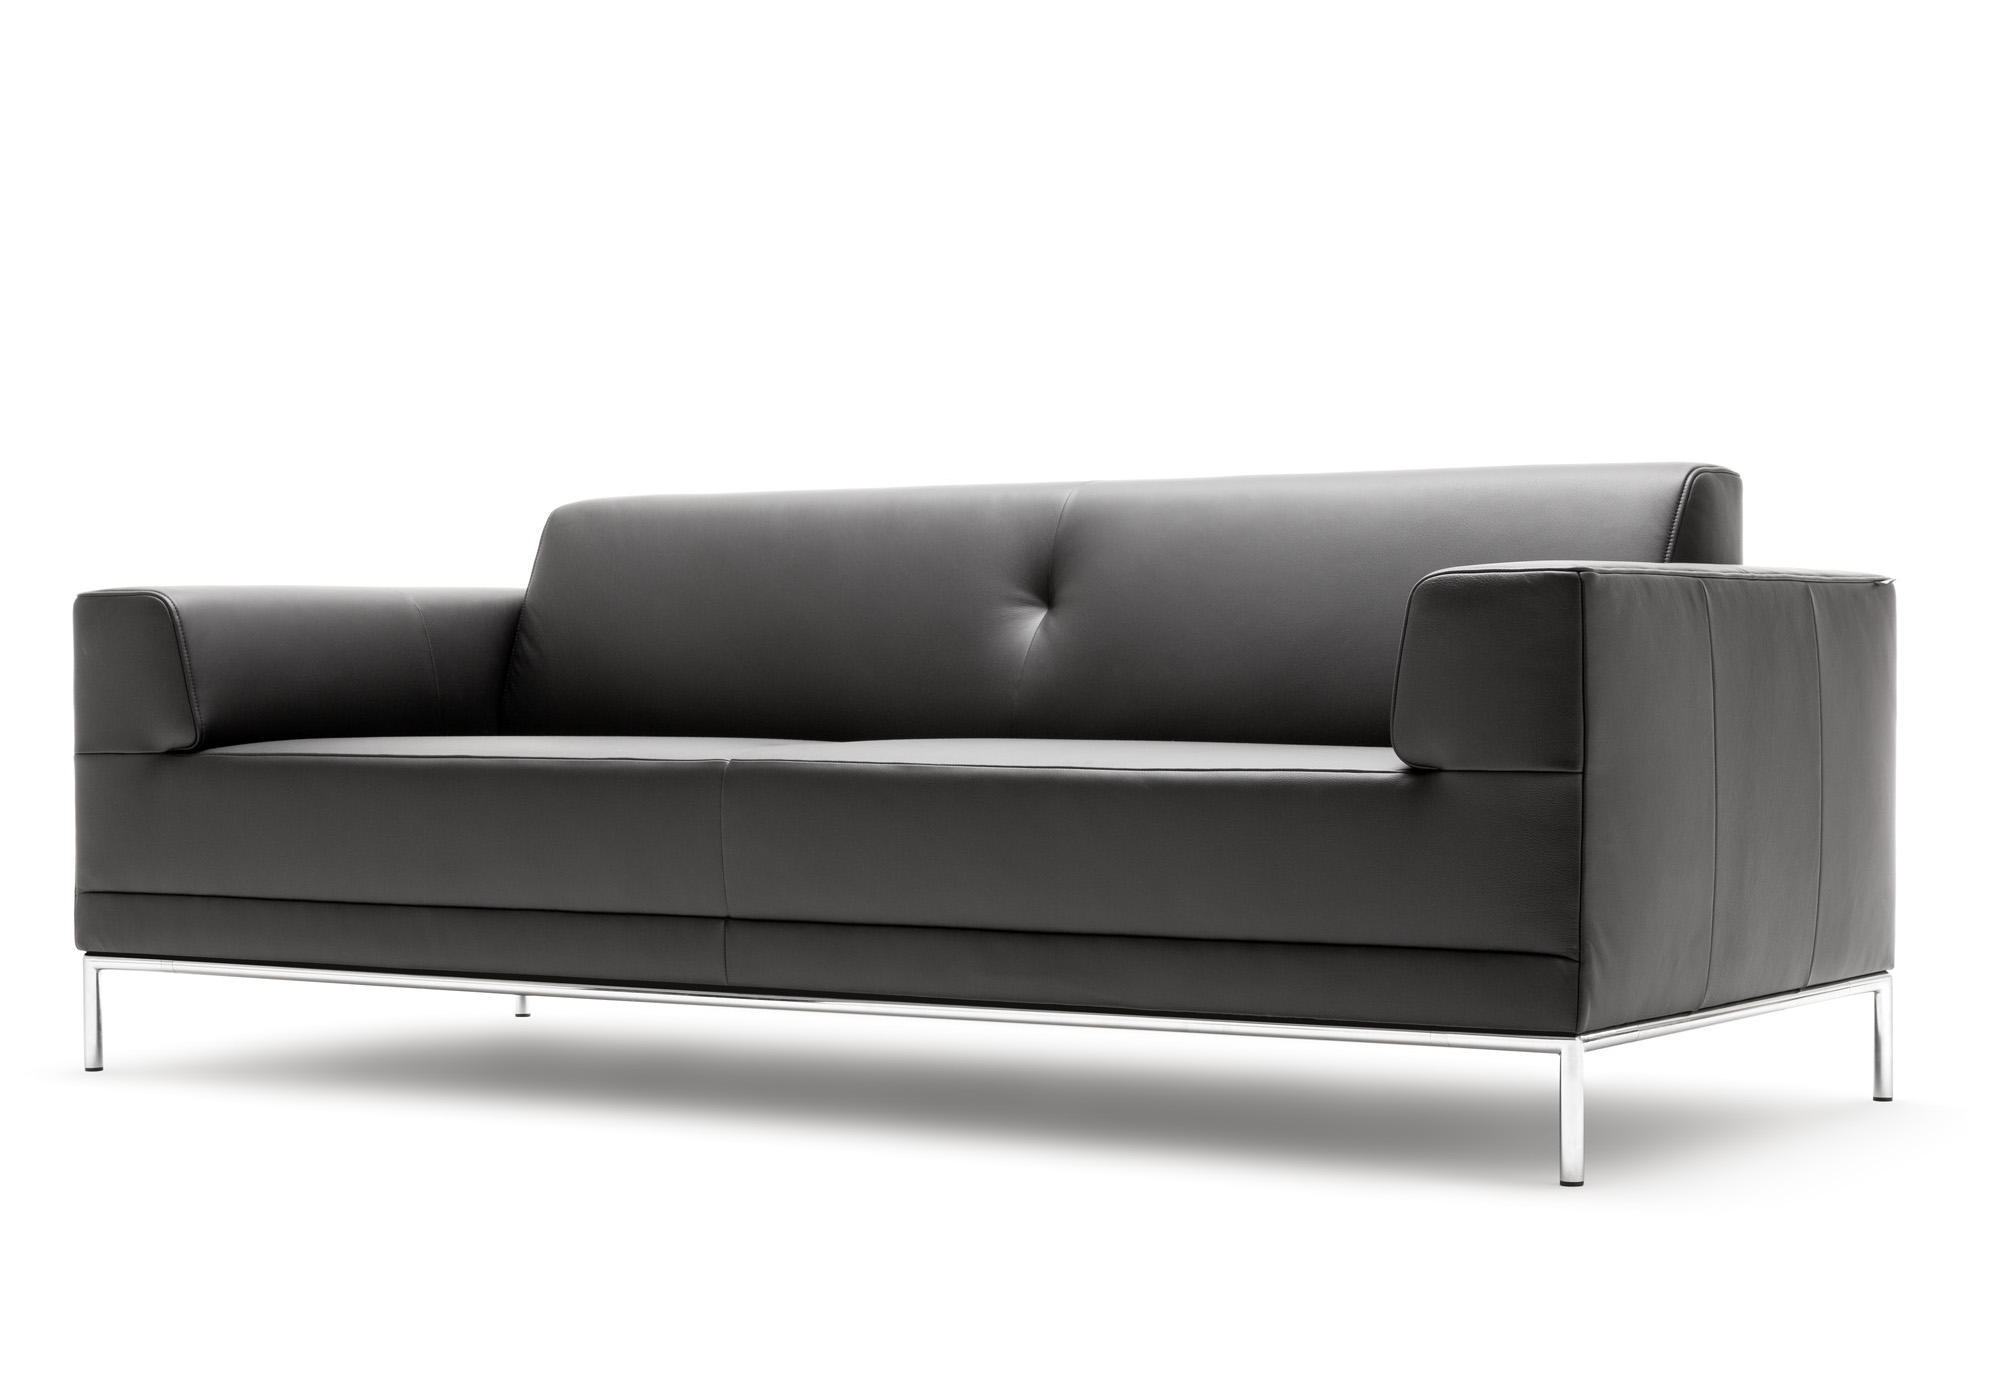 Rolf Benz Freistil Sessel Freistil 189 Von Rolf Benz Bei Sofas In Motion